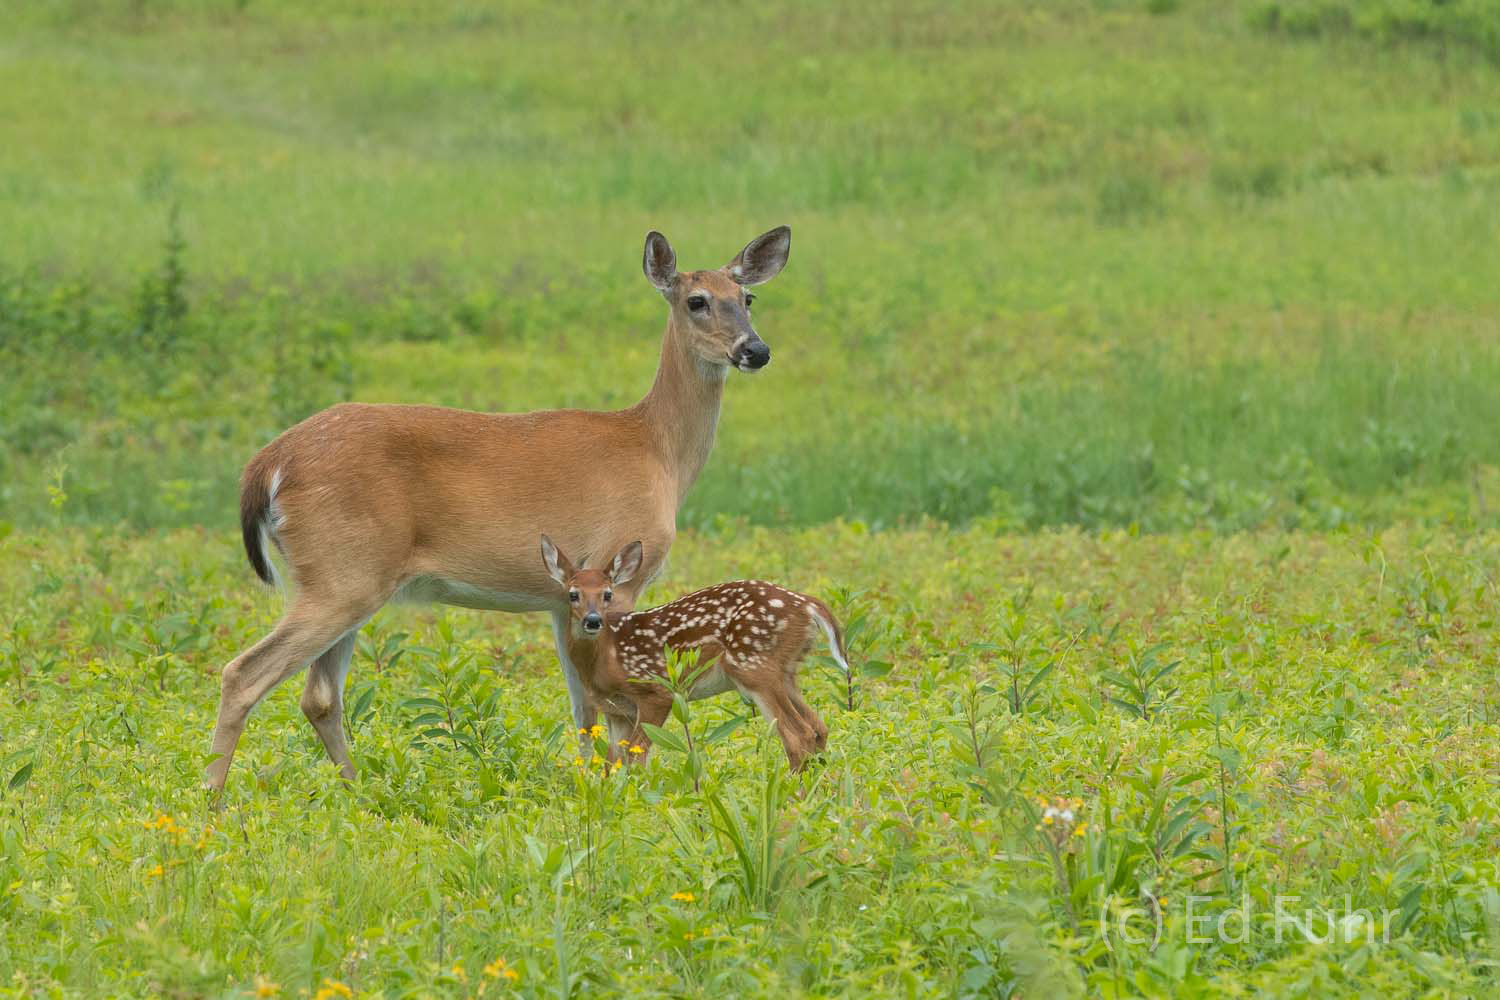 Shenandoah, Shenandoah National Park, photo, photography, images, mountains, wilderness, Virginia, deer, photo